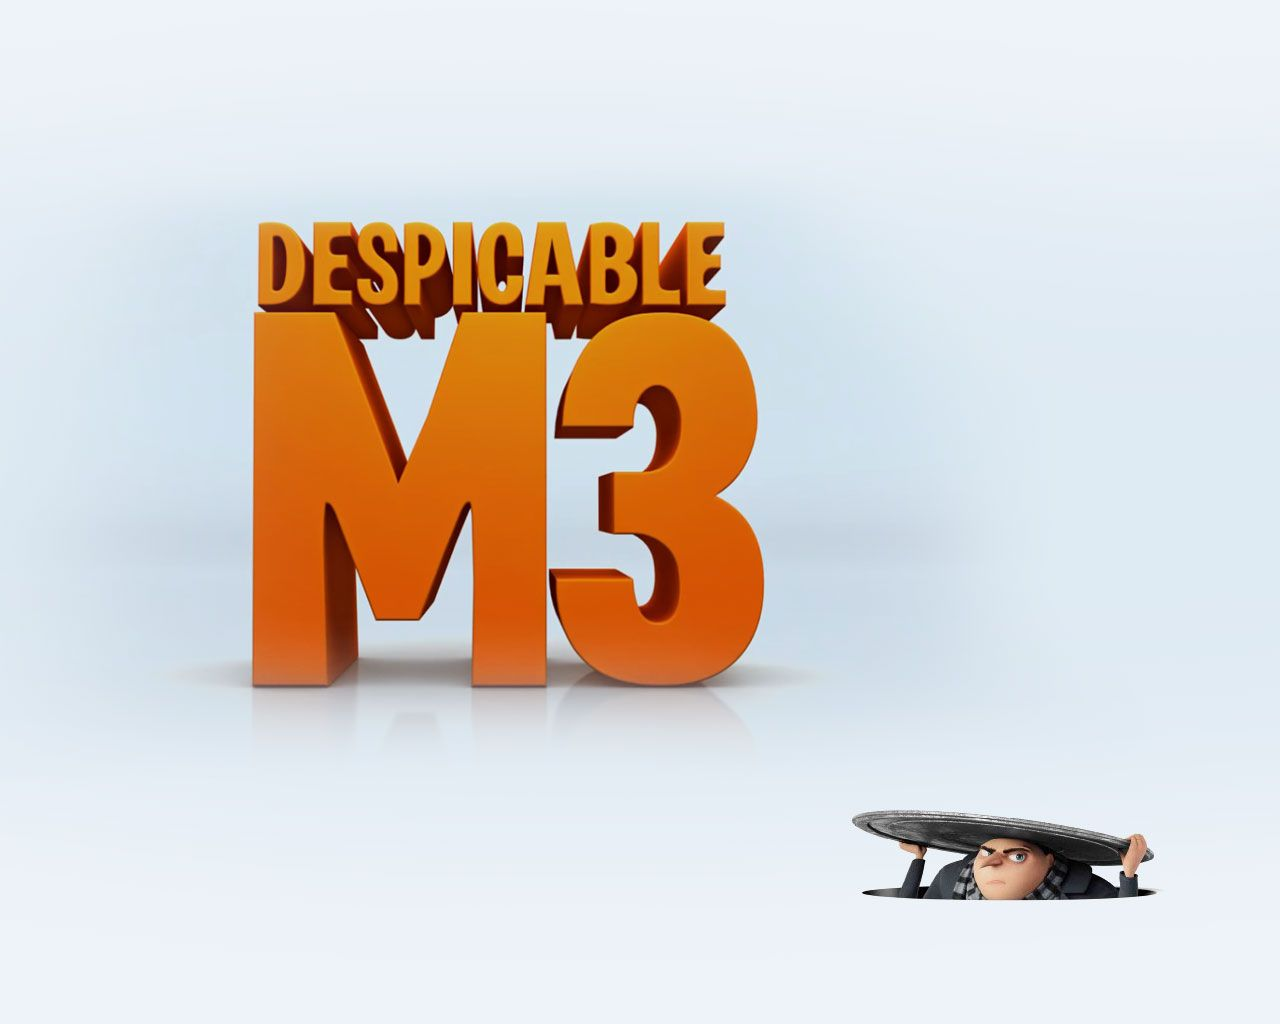 Despicable Me 3 Full Movie Streaming Online Free Download